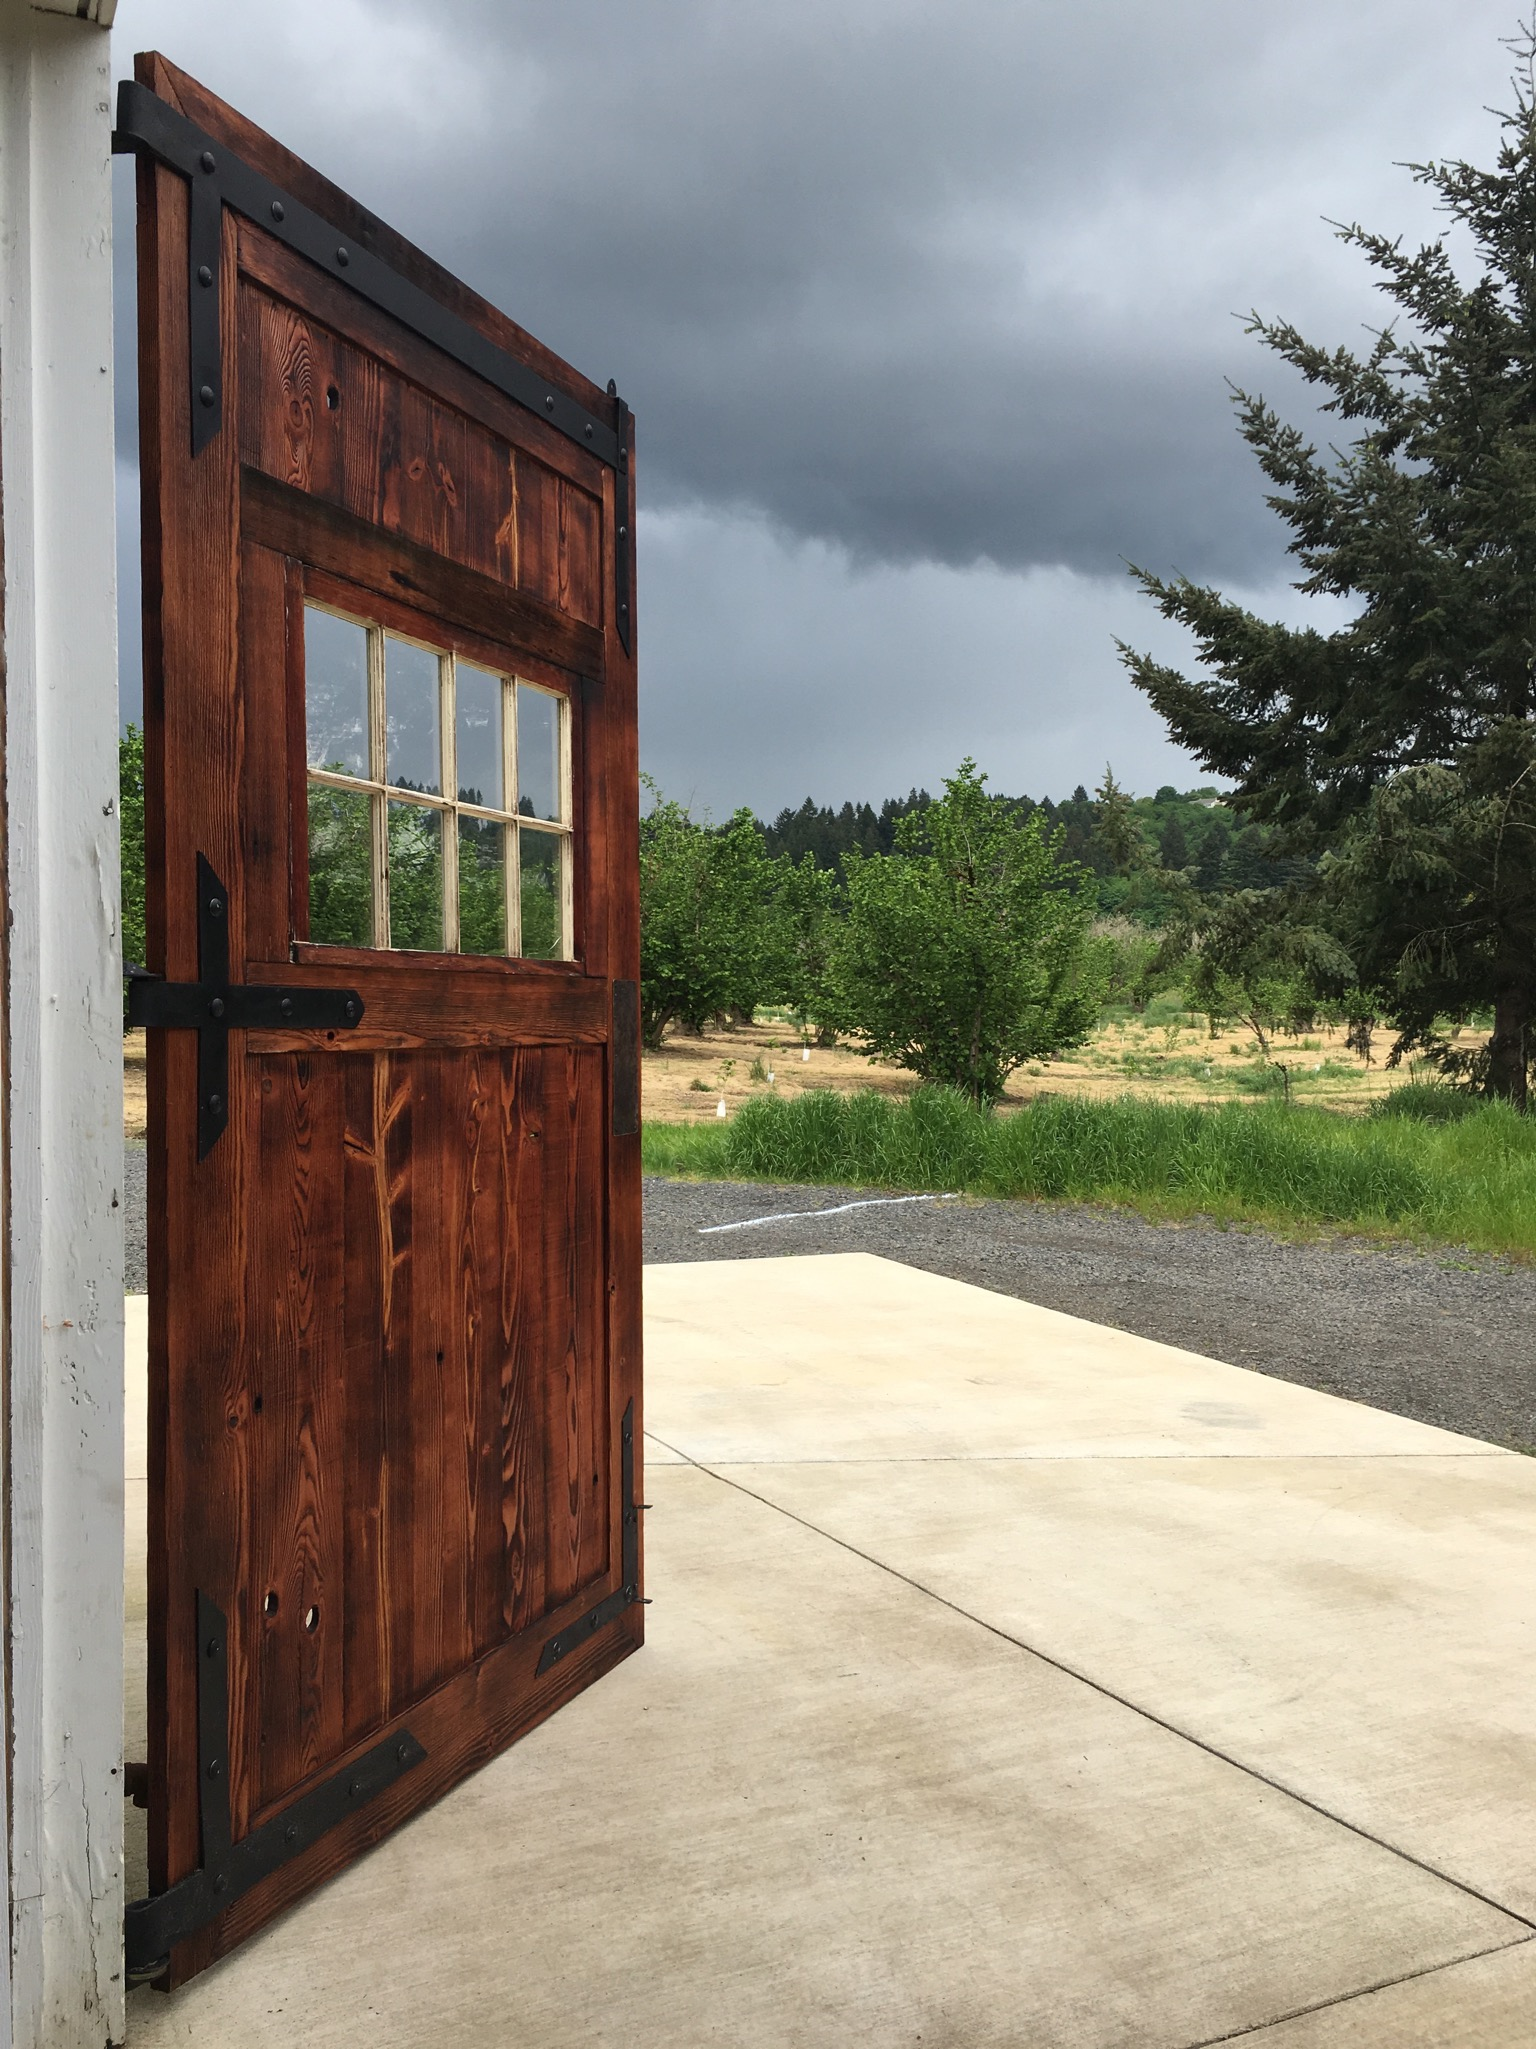 Looking out into the farmland through the beautiful wooden brewery doors at Wolves & People. (photo by Cat Stelzer)